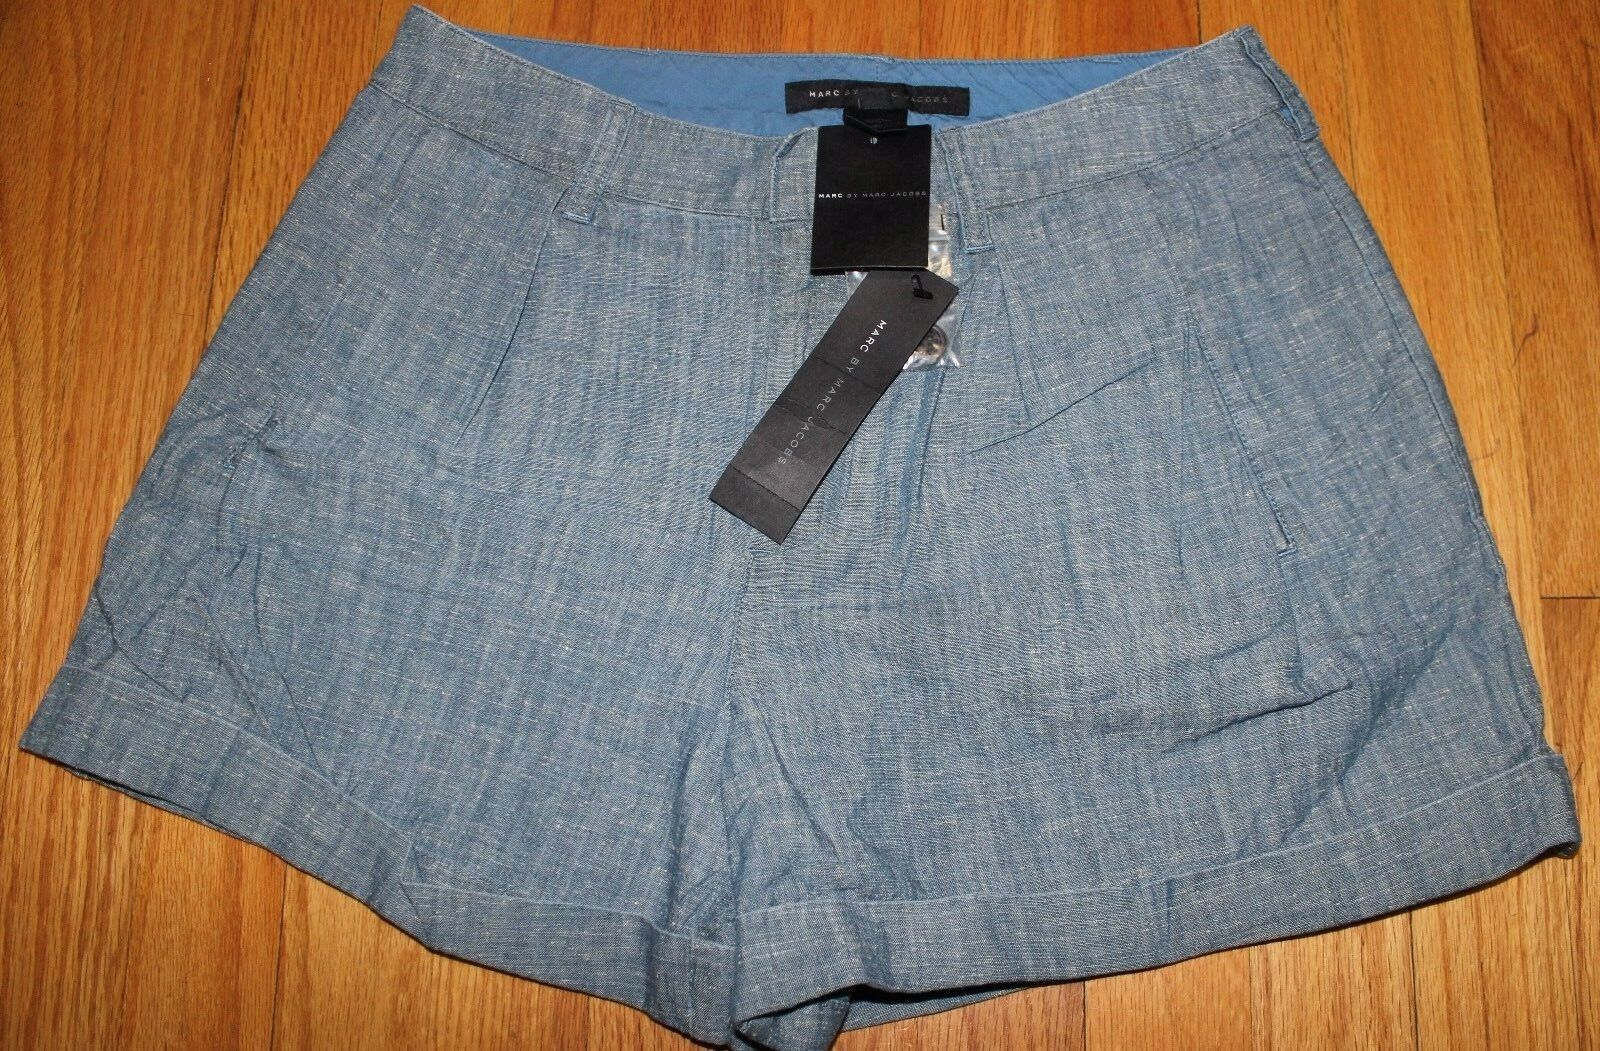 168 MARC BY MARC JACOBS DARK SEA blueE 100%COTTON SHORTS US 2